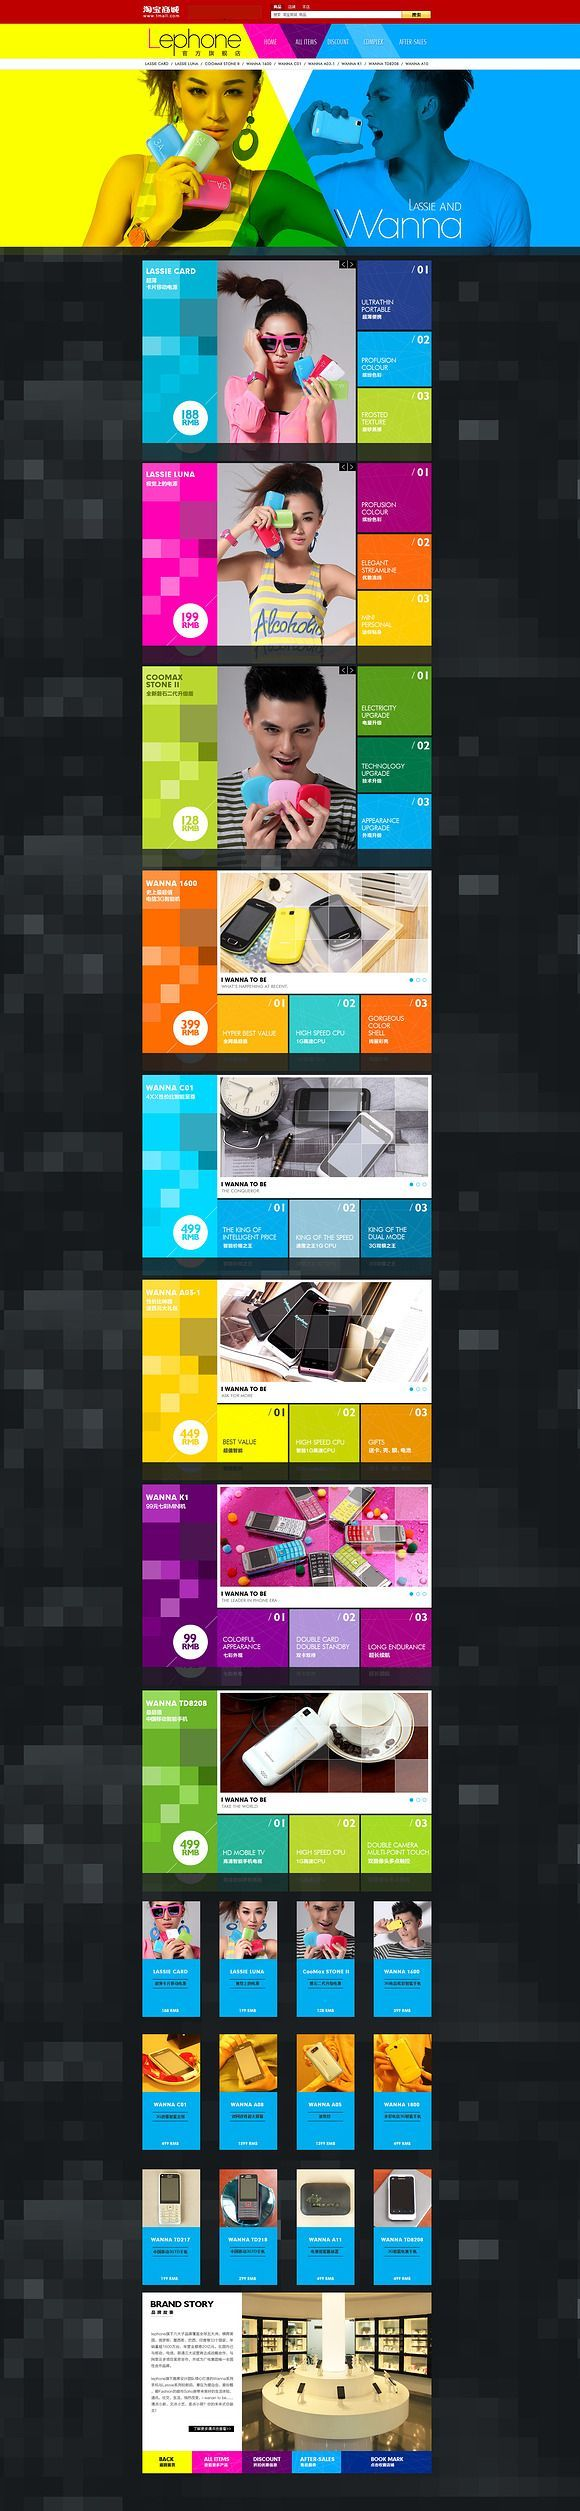 #webdesign #colorful #flat web design